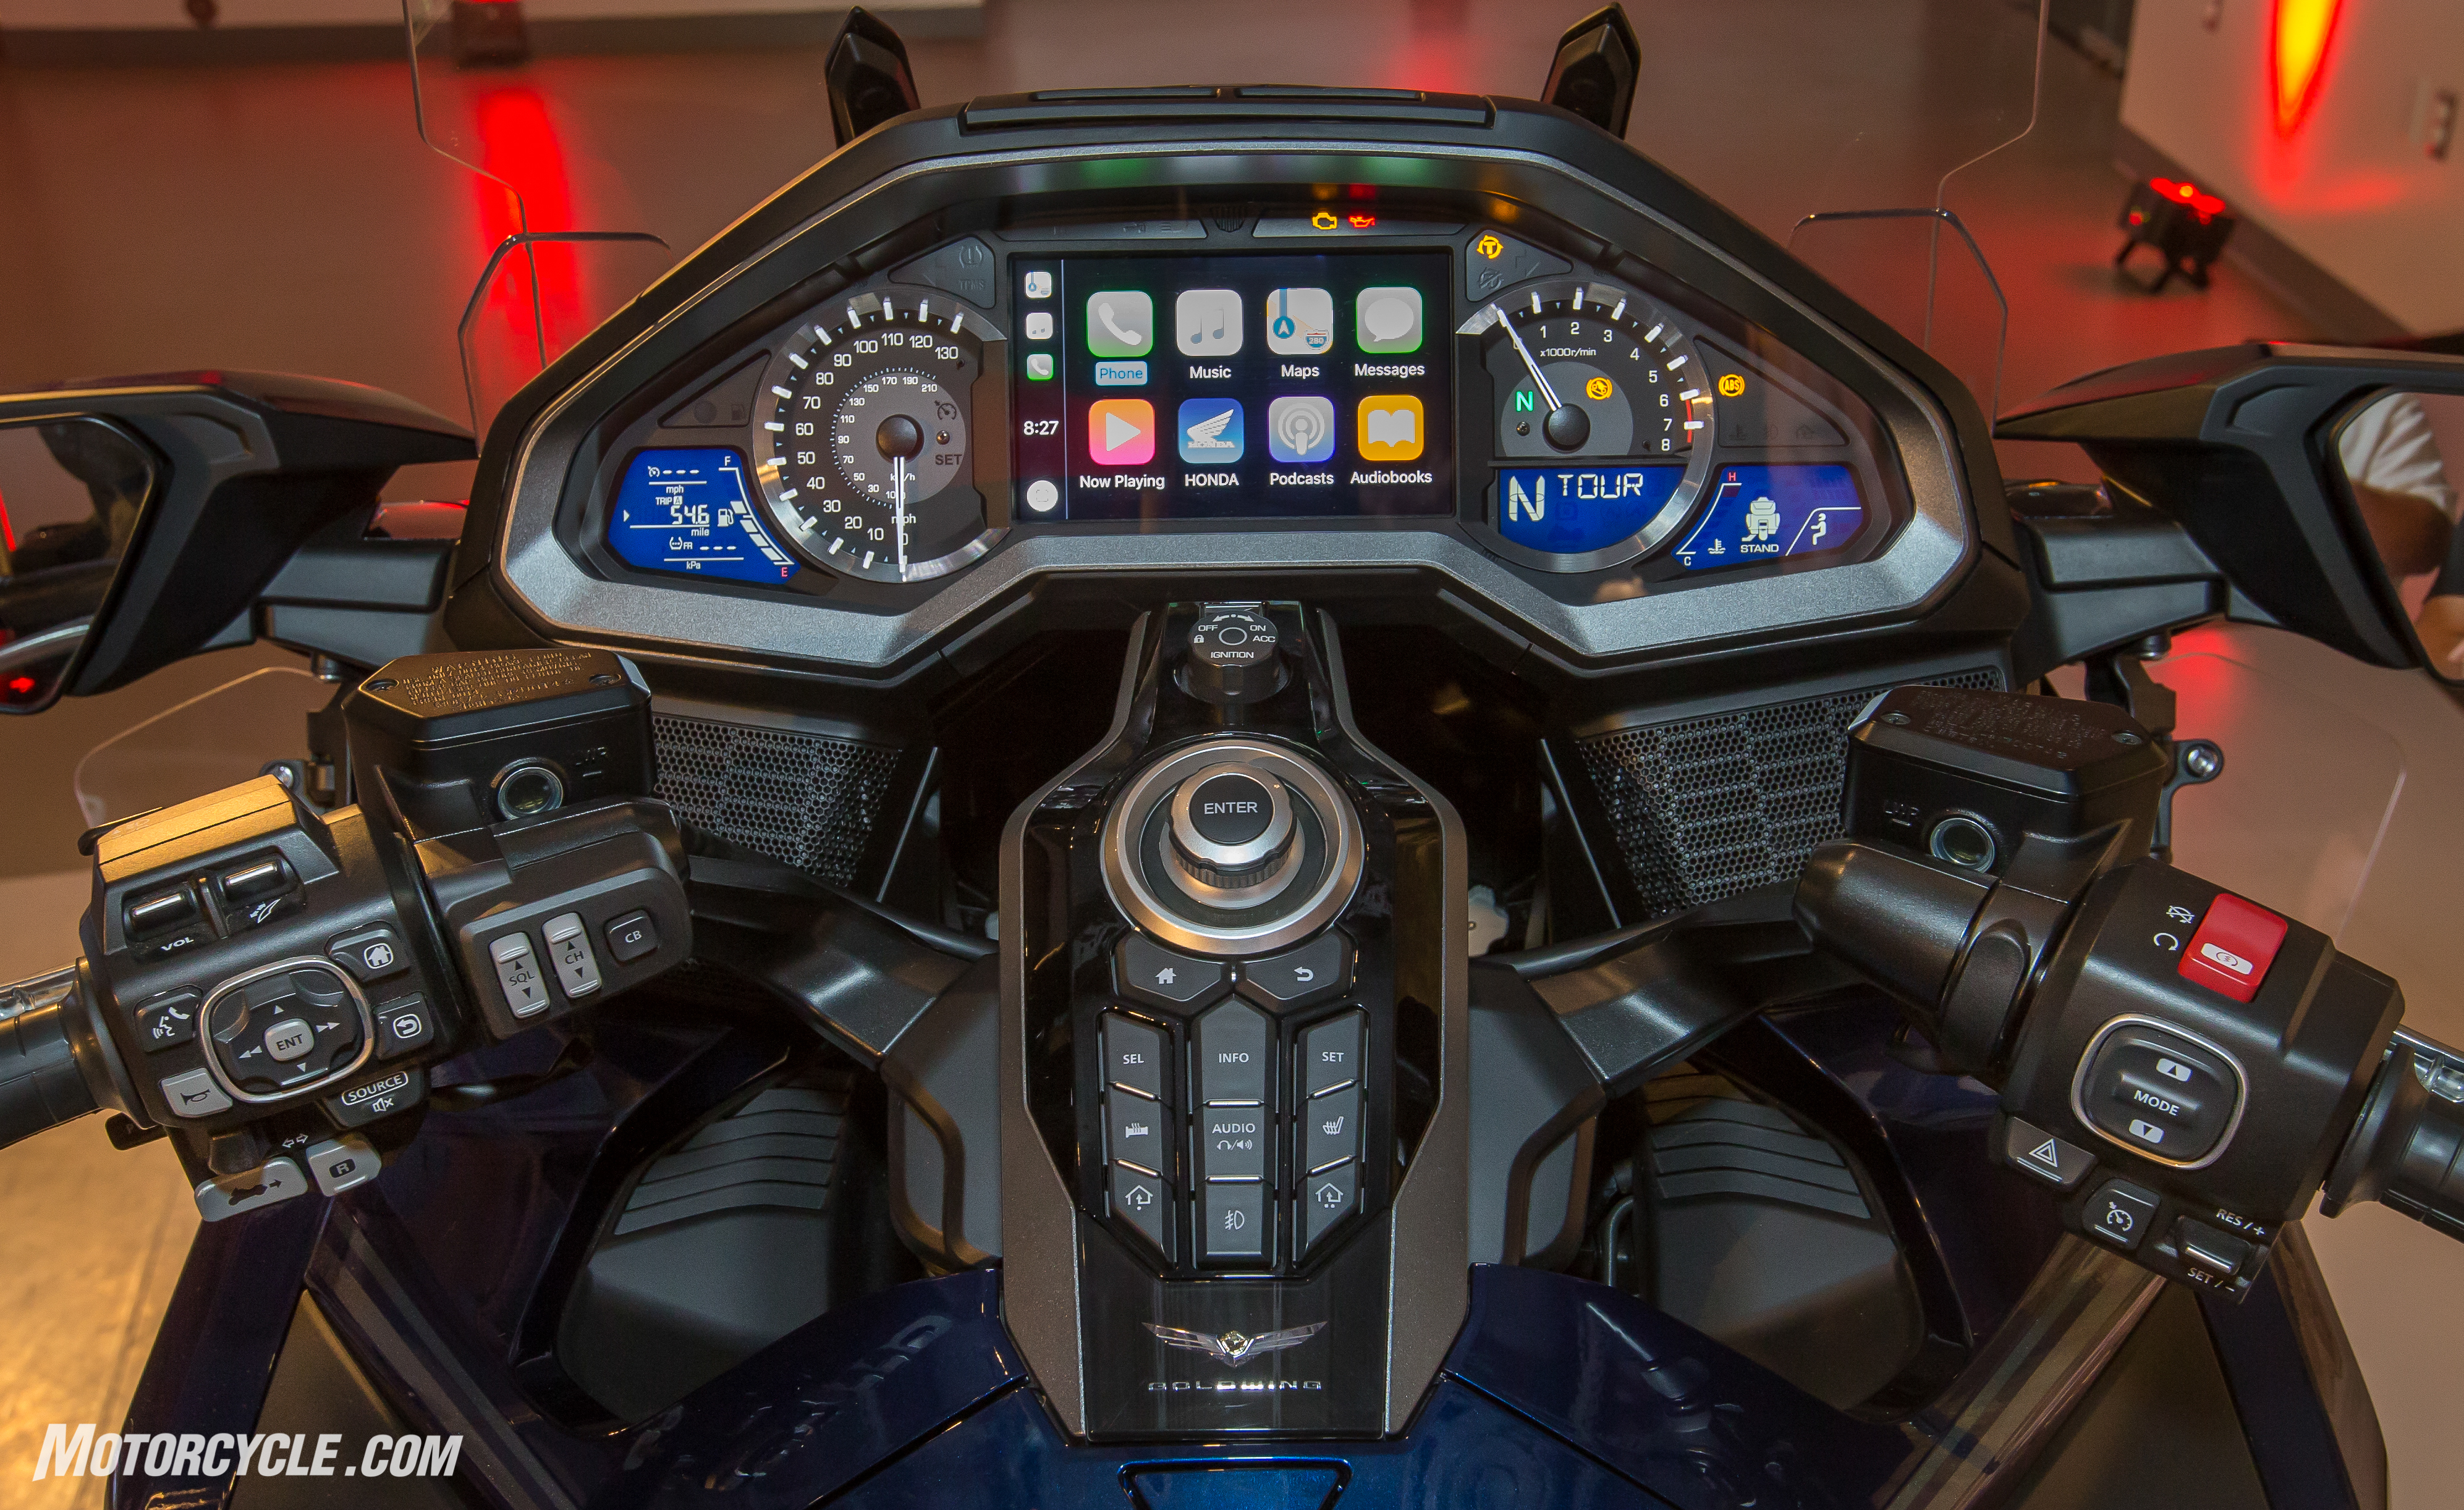 Top 10 Facts About The 2018 Honda Gold Wing Gl1800 Wiring Diagram Communication Tour